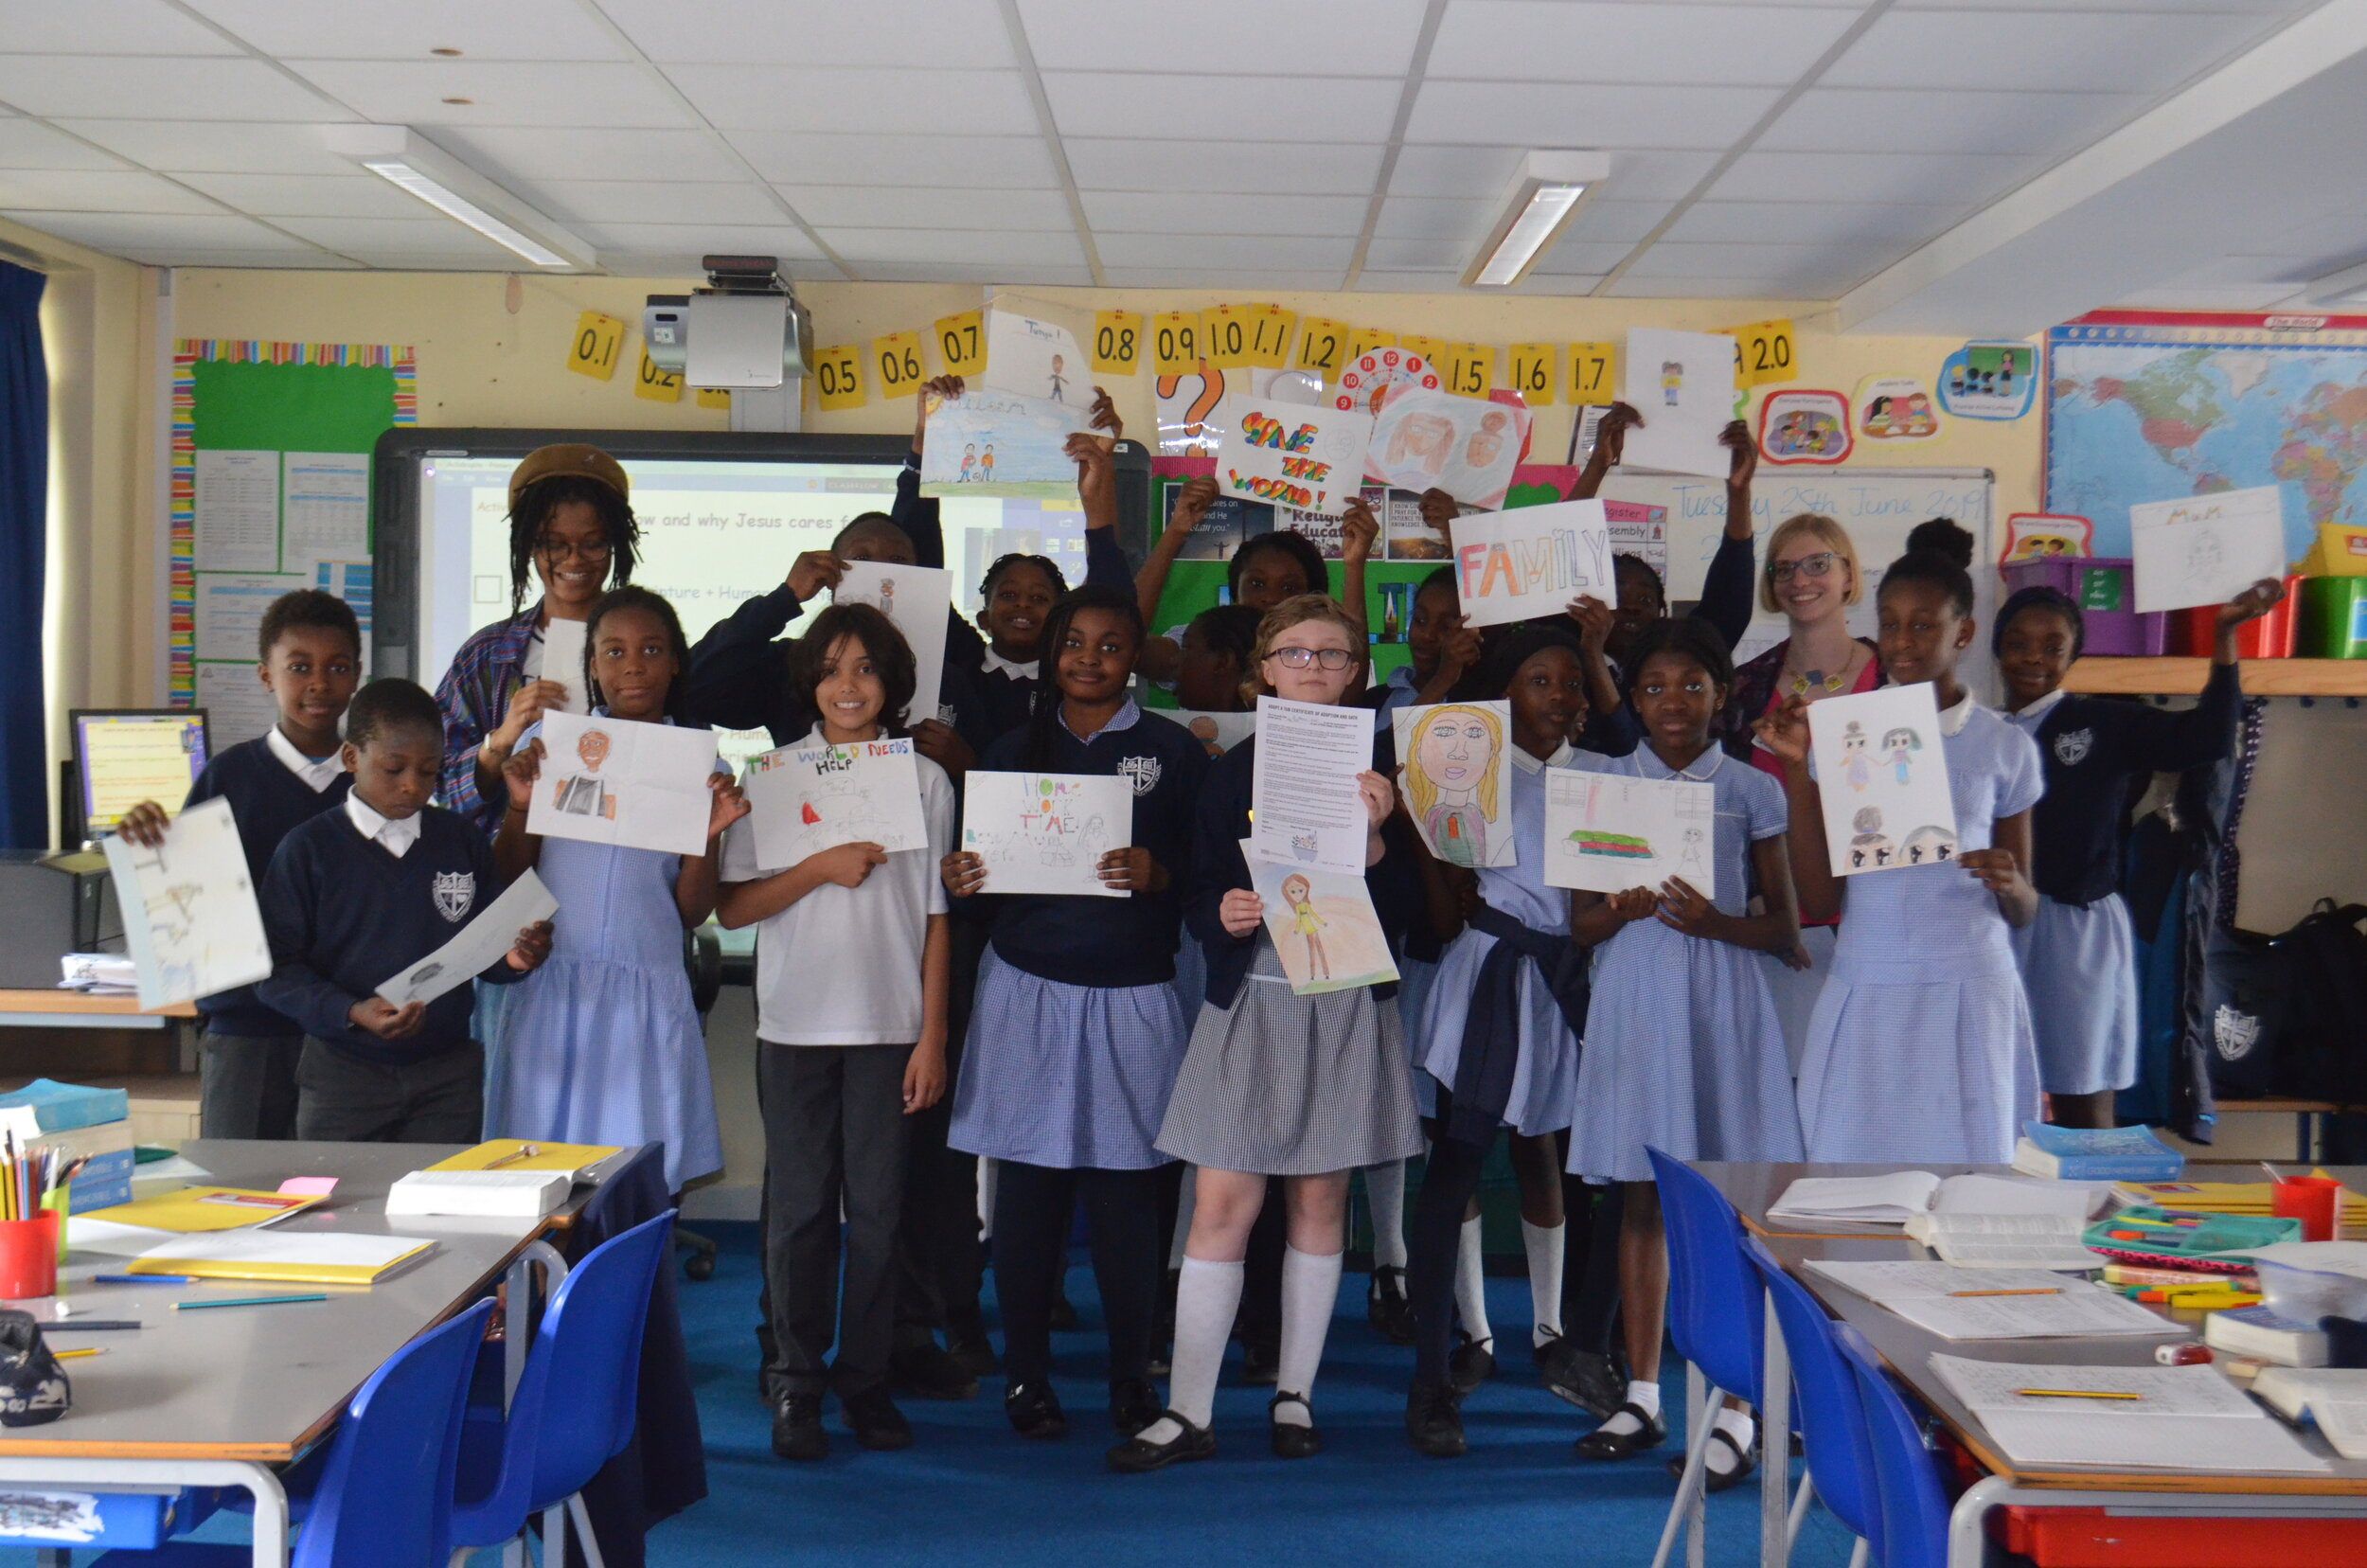 Olivia, Alice and Yr 6 pupils with their artworks and AAT Certificate